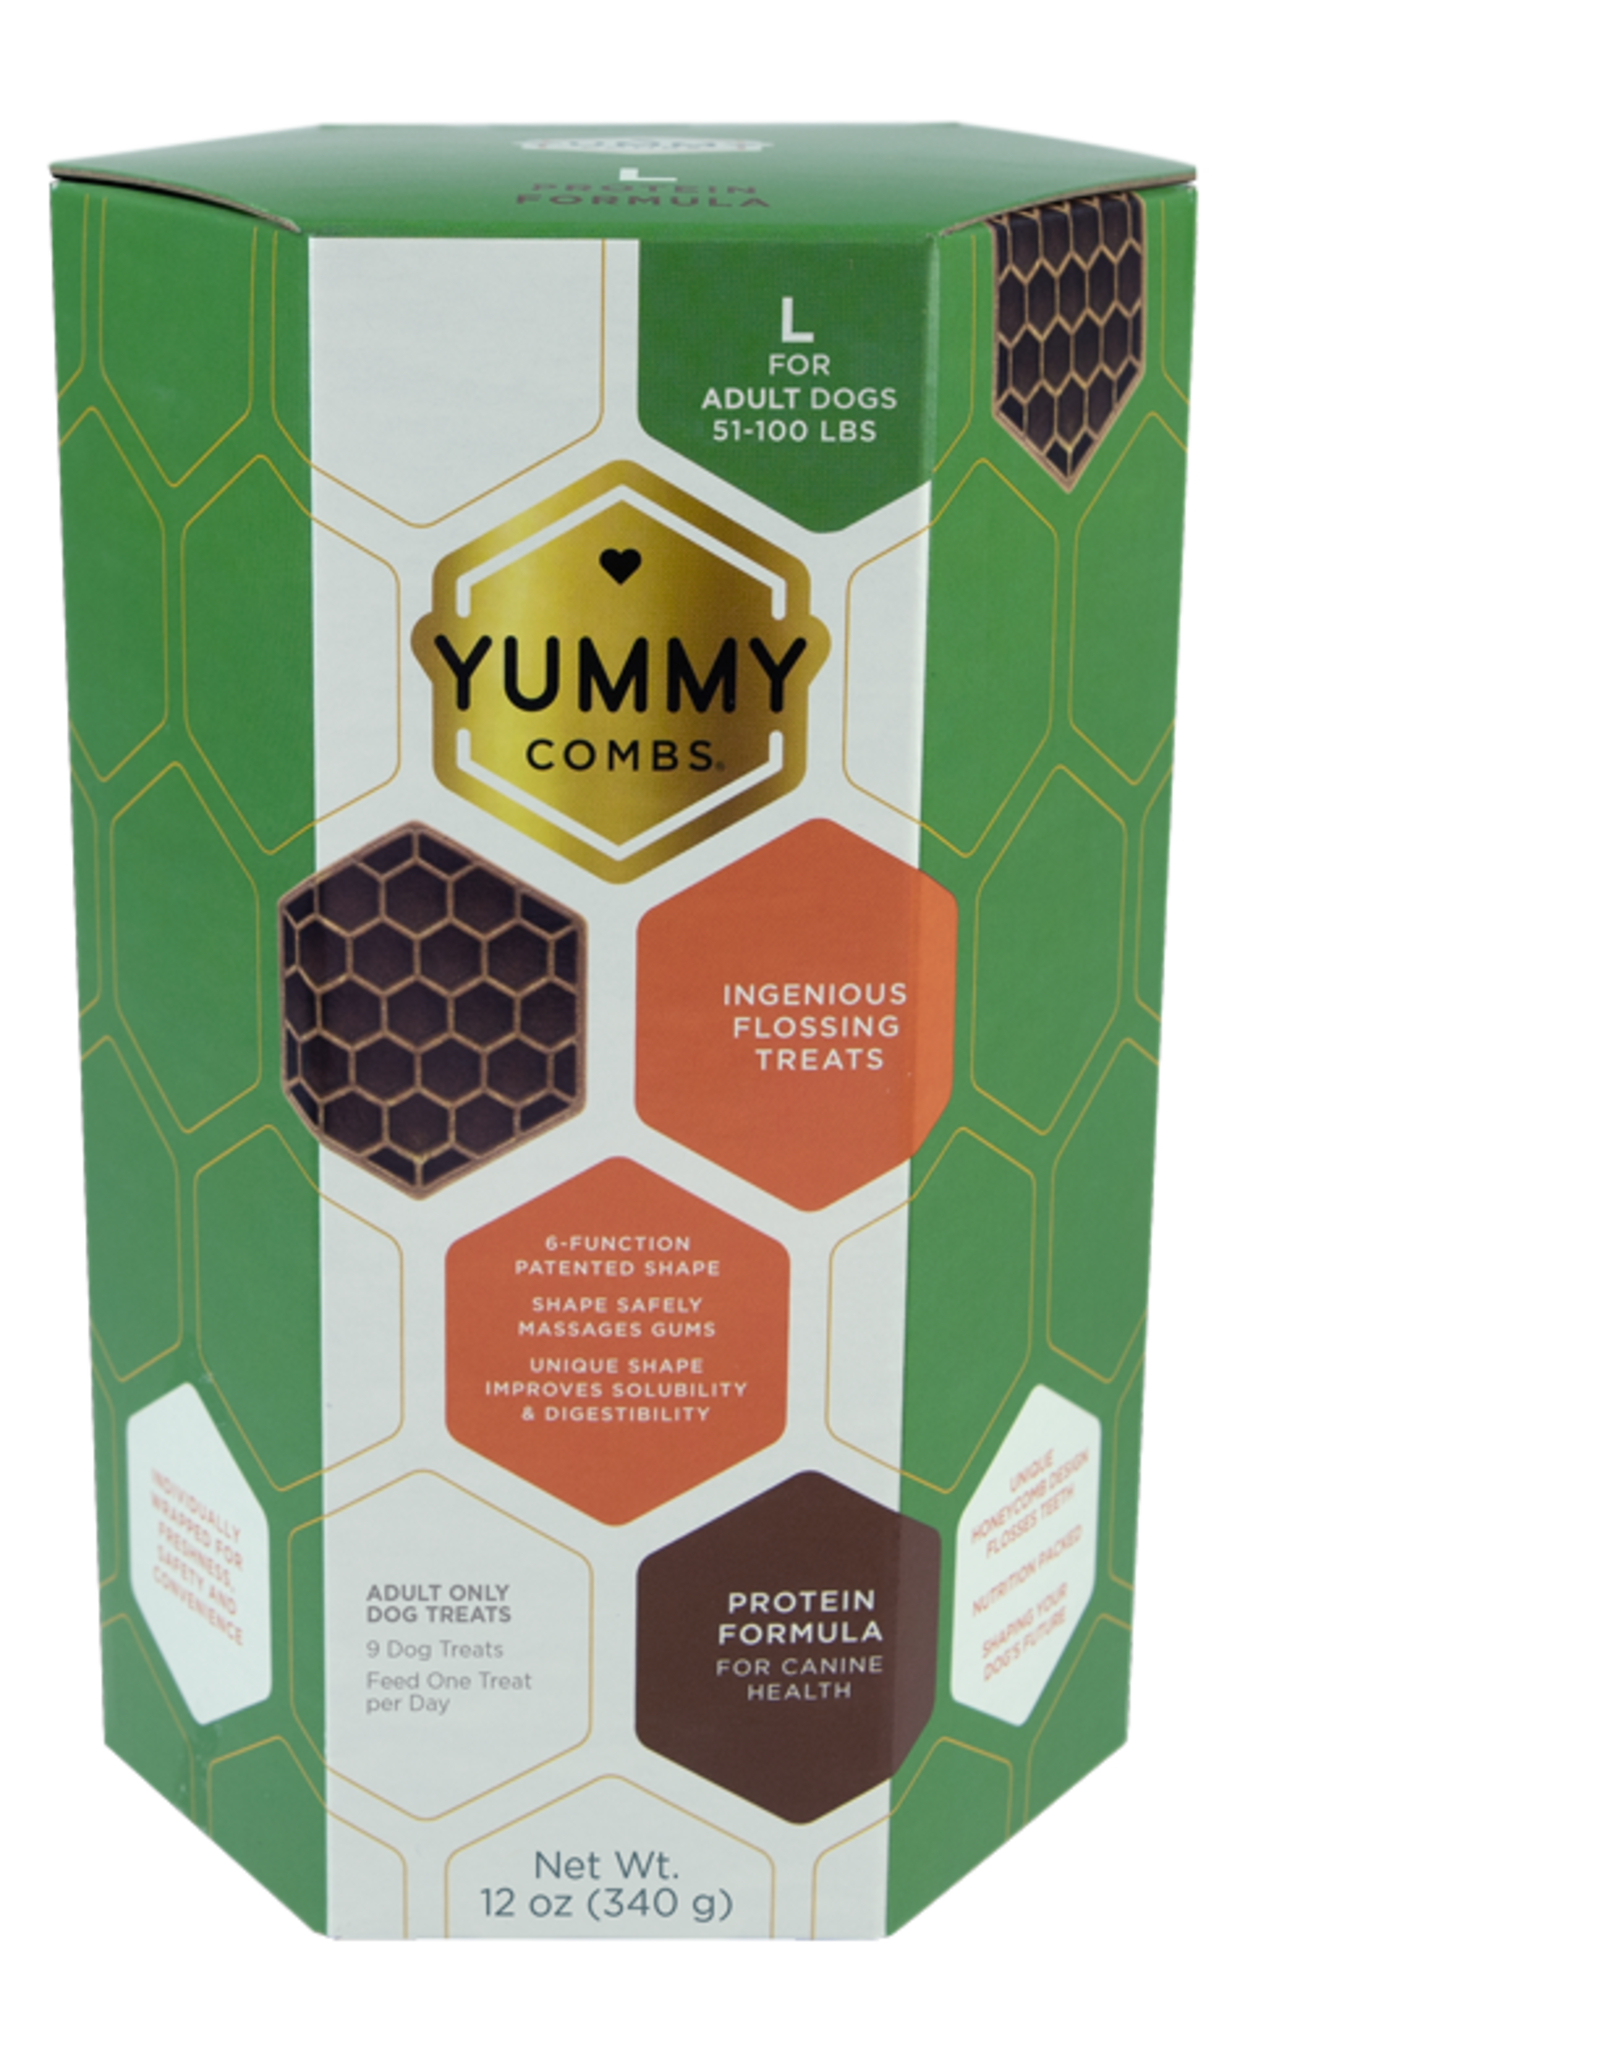 Pet's Best Life YUMMY COMBS PROTEIN FORMULA